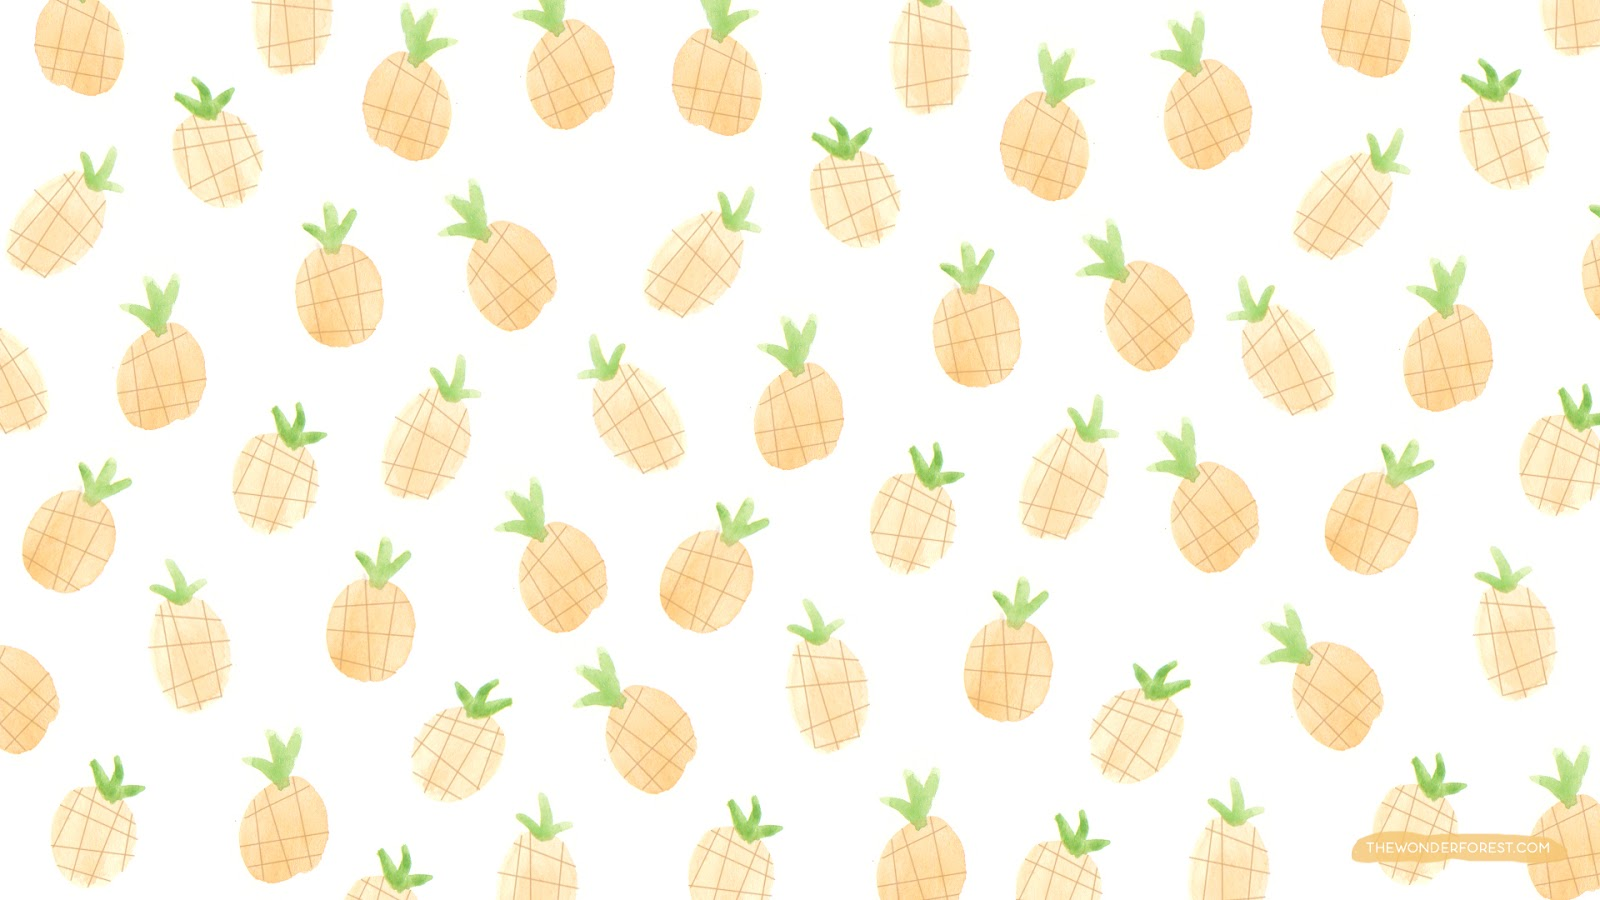 Cute Wallpapers Of Pineapples Fruity Iphone And Desktop Wallpapers Wonder Forest